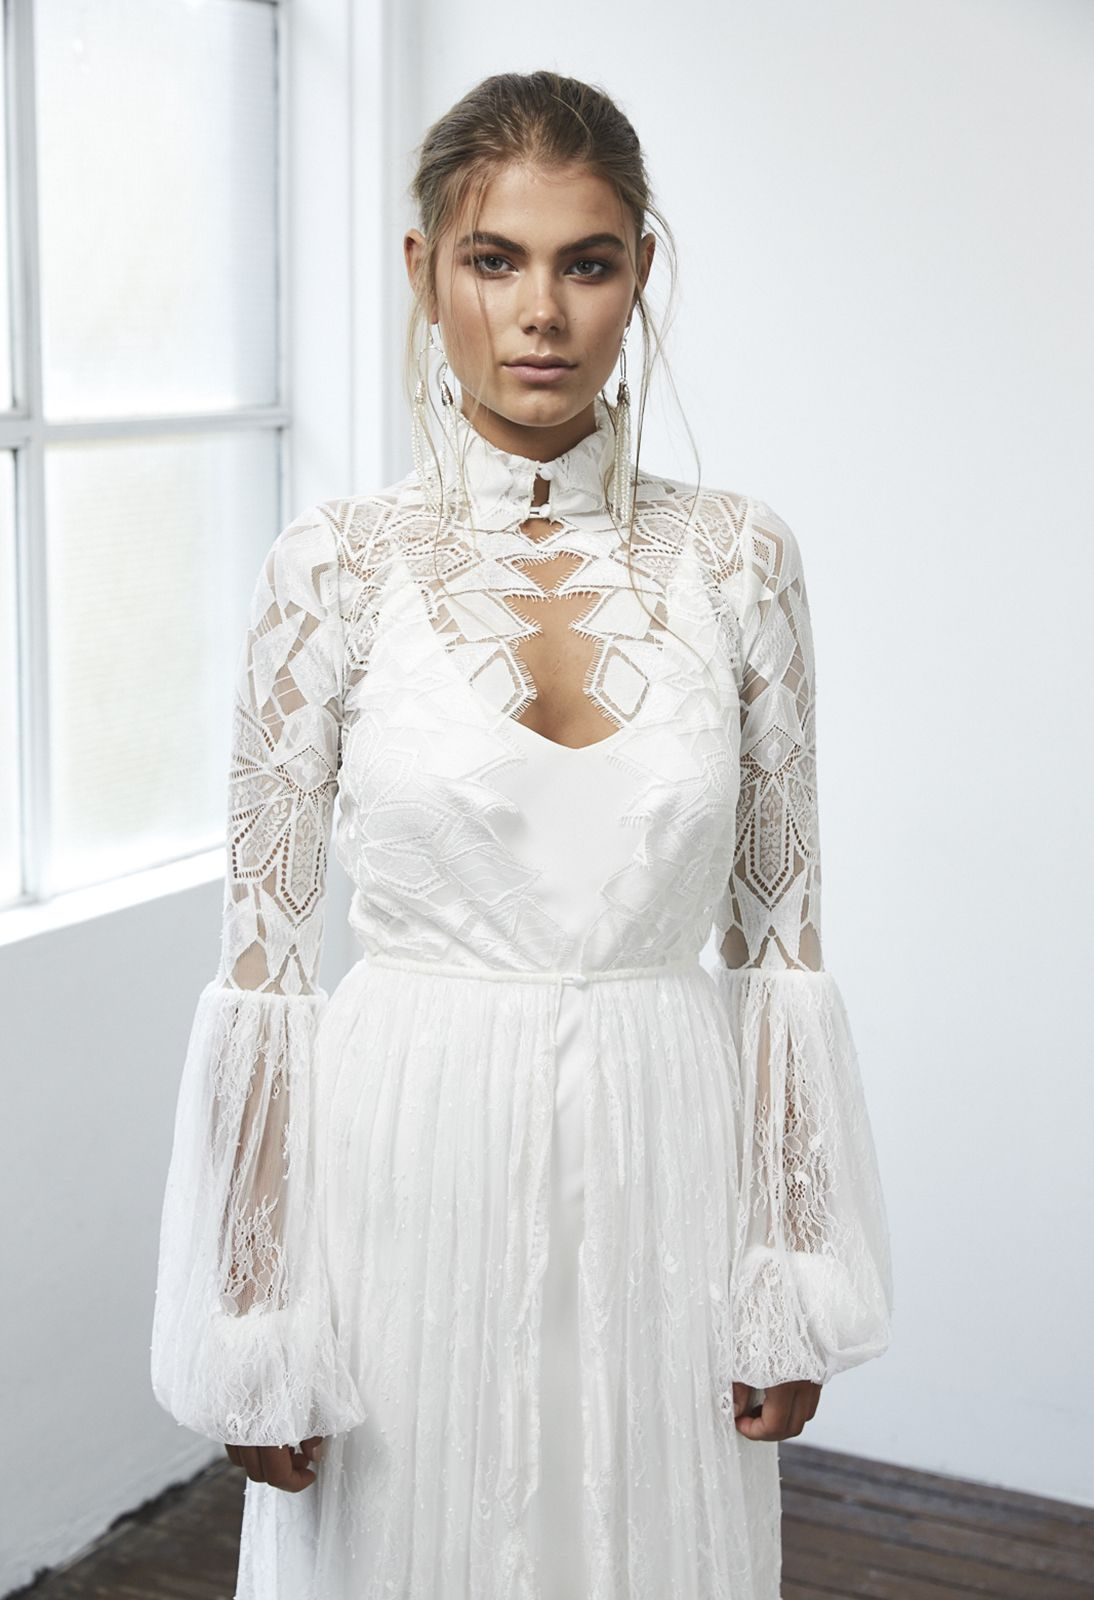 B L A N C by Grace Loves Lace - The New Collection | graceloveslace ...